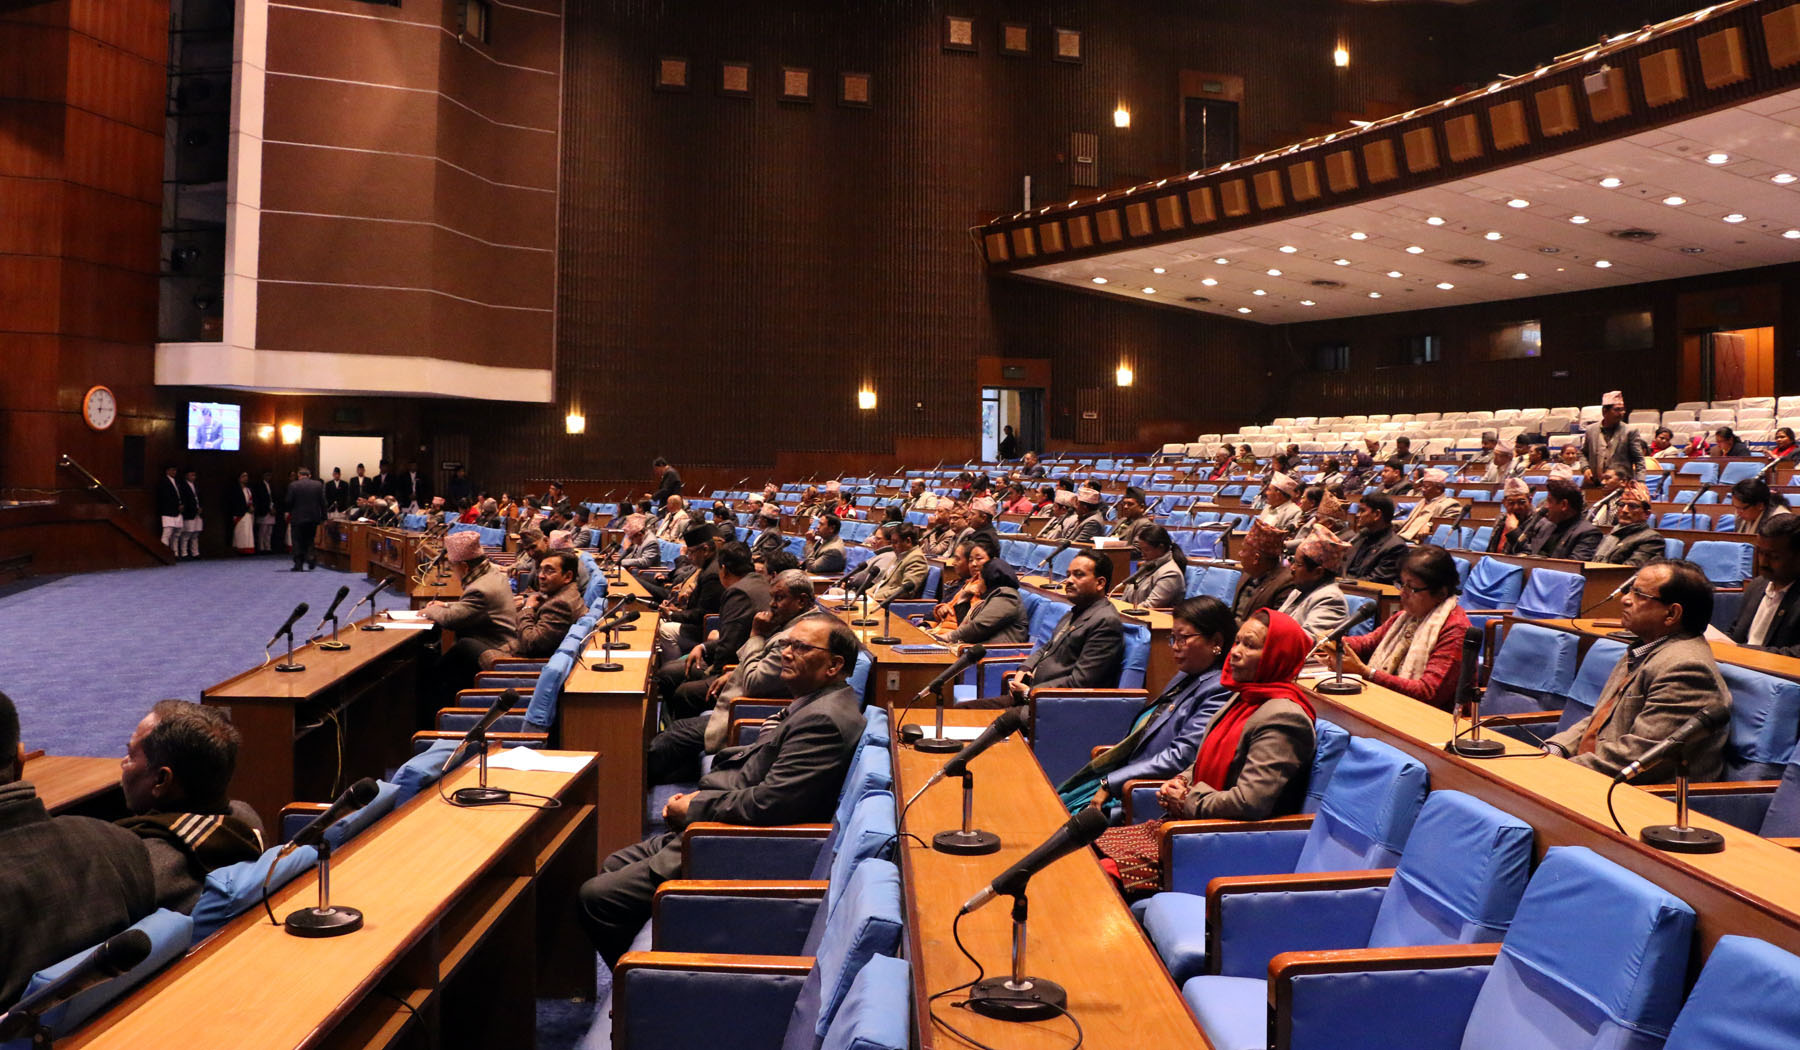 HoR members draw govt's attention on various issues